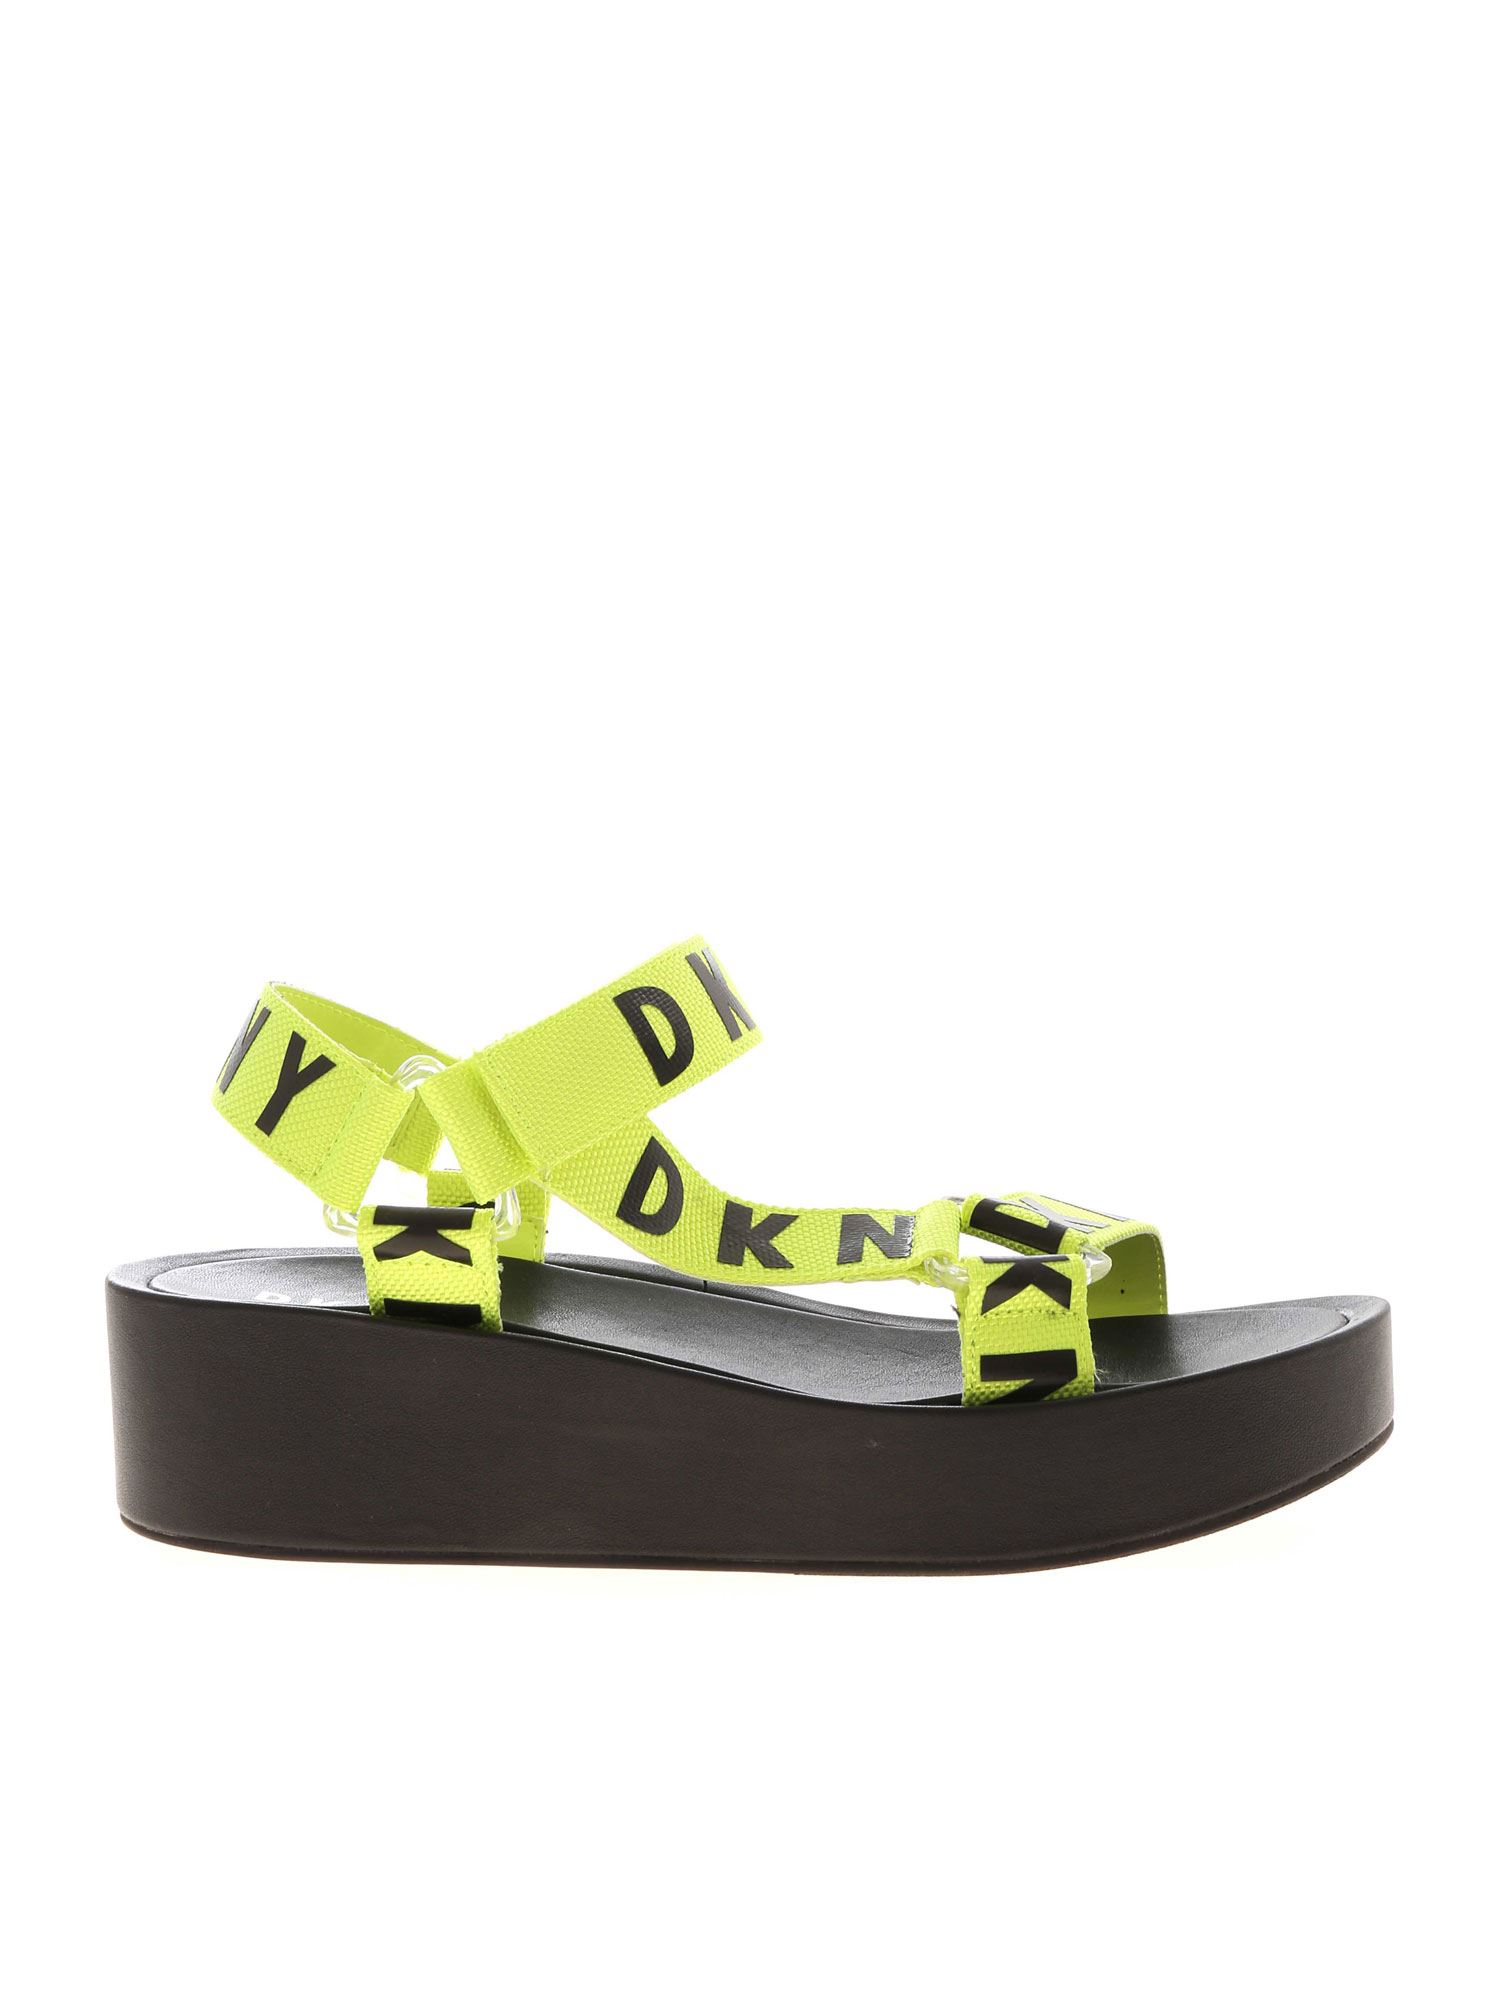 Dkny AYLI MULTI STRAP SANDALS IN BLACK AND NEON YELLOW